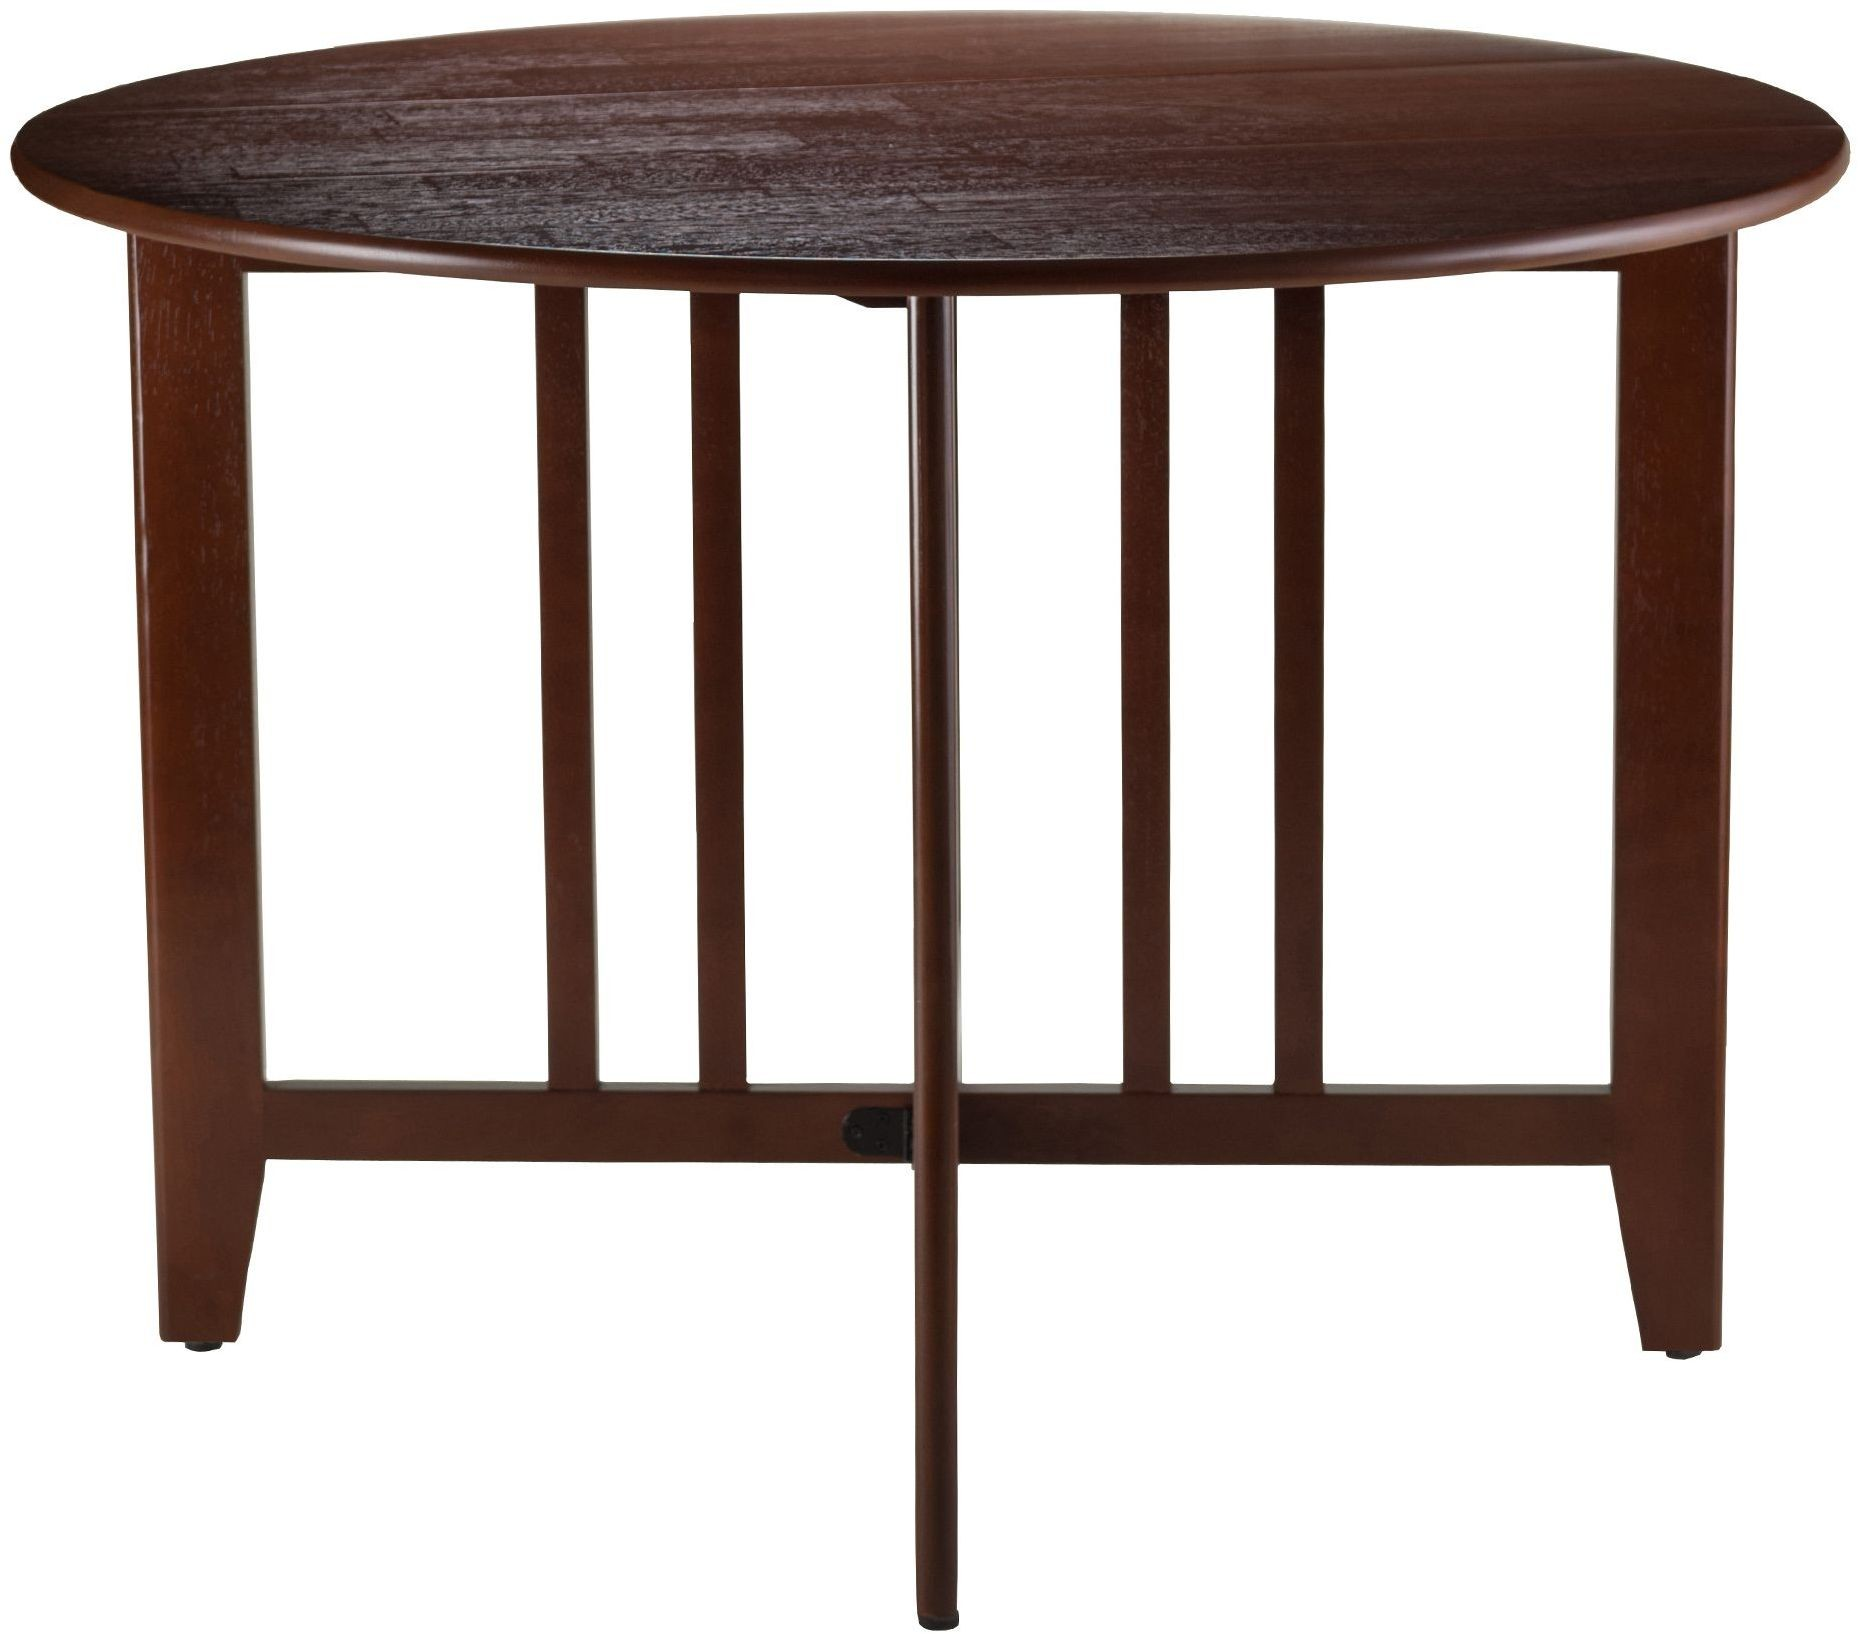 Alamo 42 Double Drop Leaf Round Dining Table 94142 Winsome